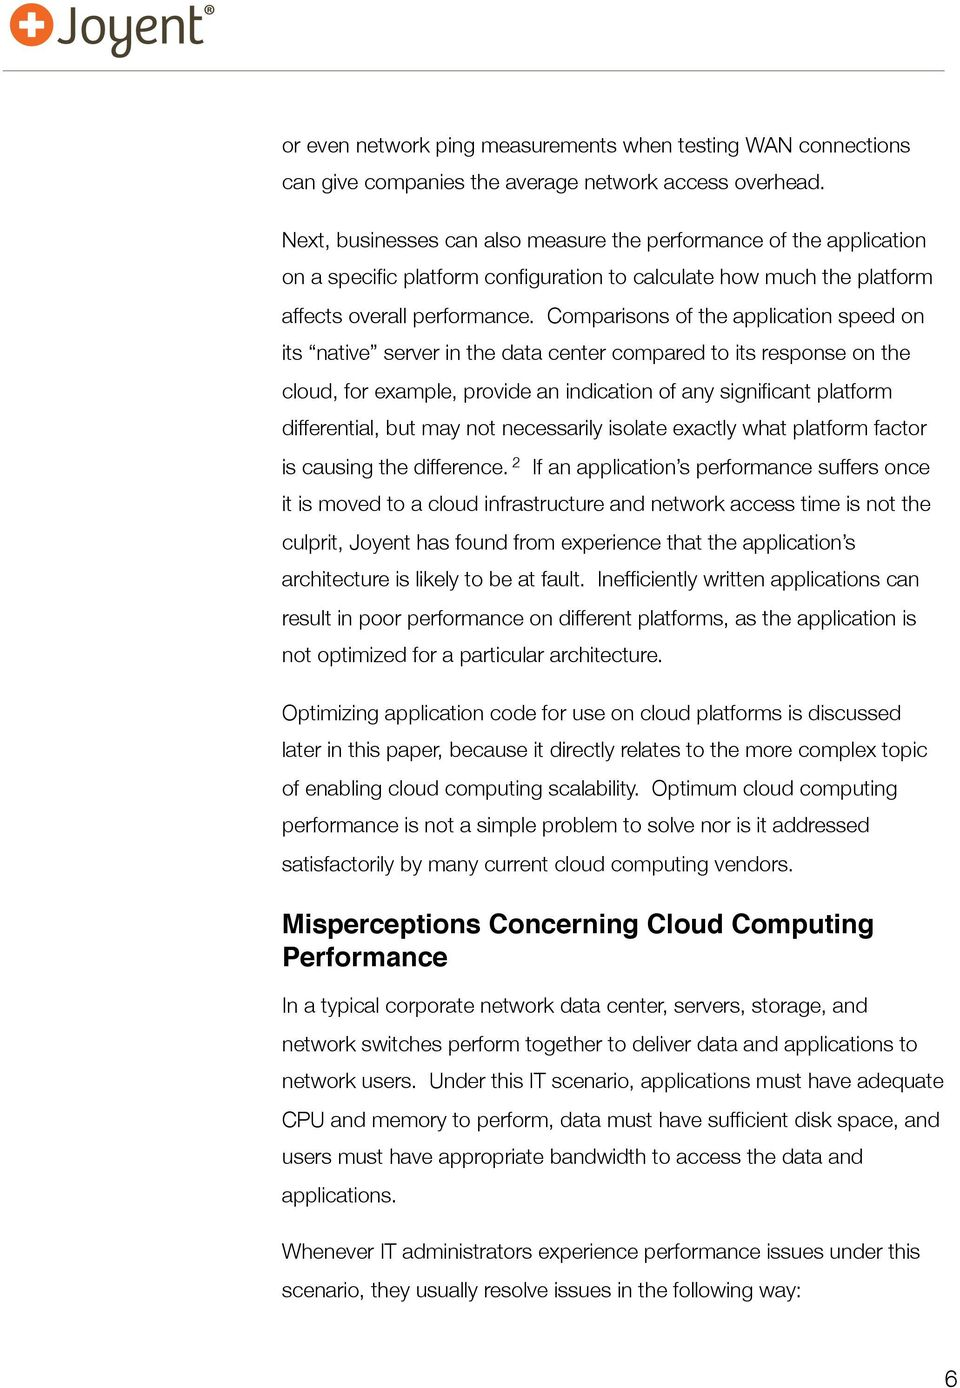 Comparisons of the application speed on its native server in the data center compared to its response on the cloud, for example, provide an indication of any significant platform differential, but